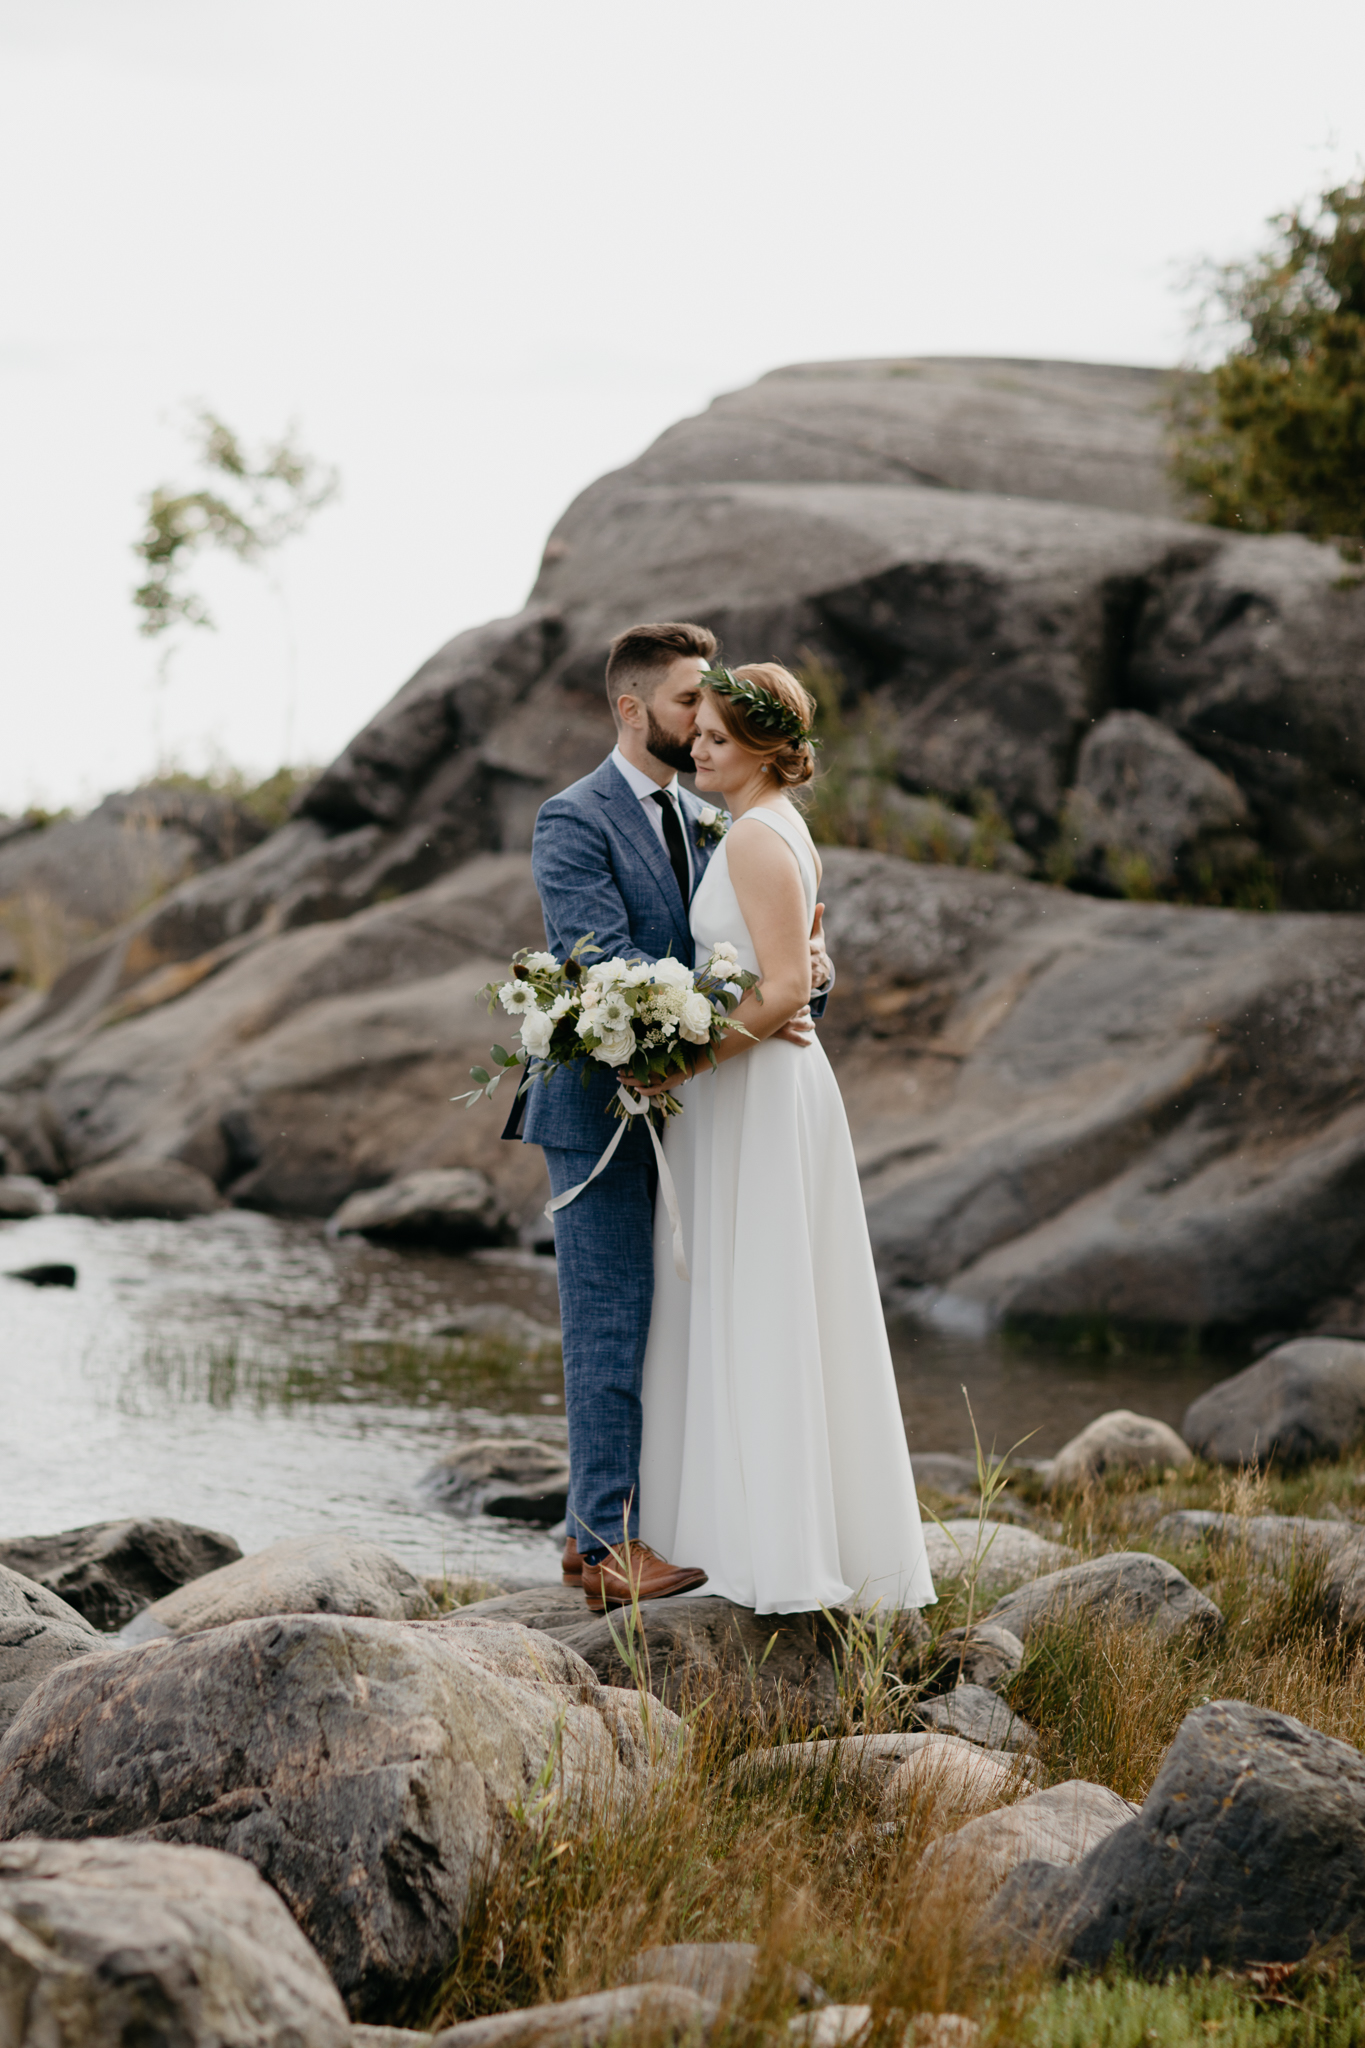 Vilhelmiina + Mark | Photo by Patrick Karkkolainen Wedding Photographer | Helsinki Wedding Photographer-152.jpg